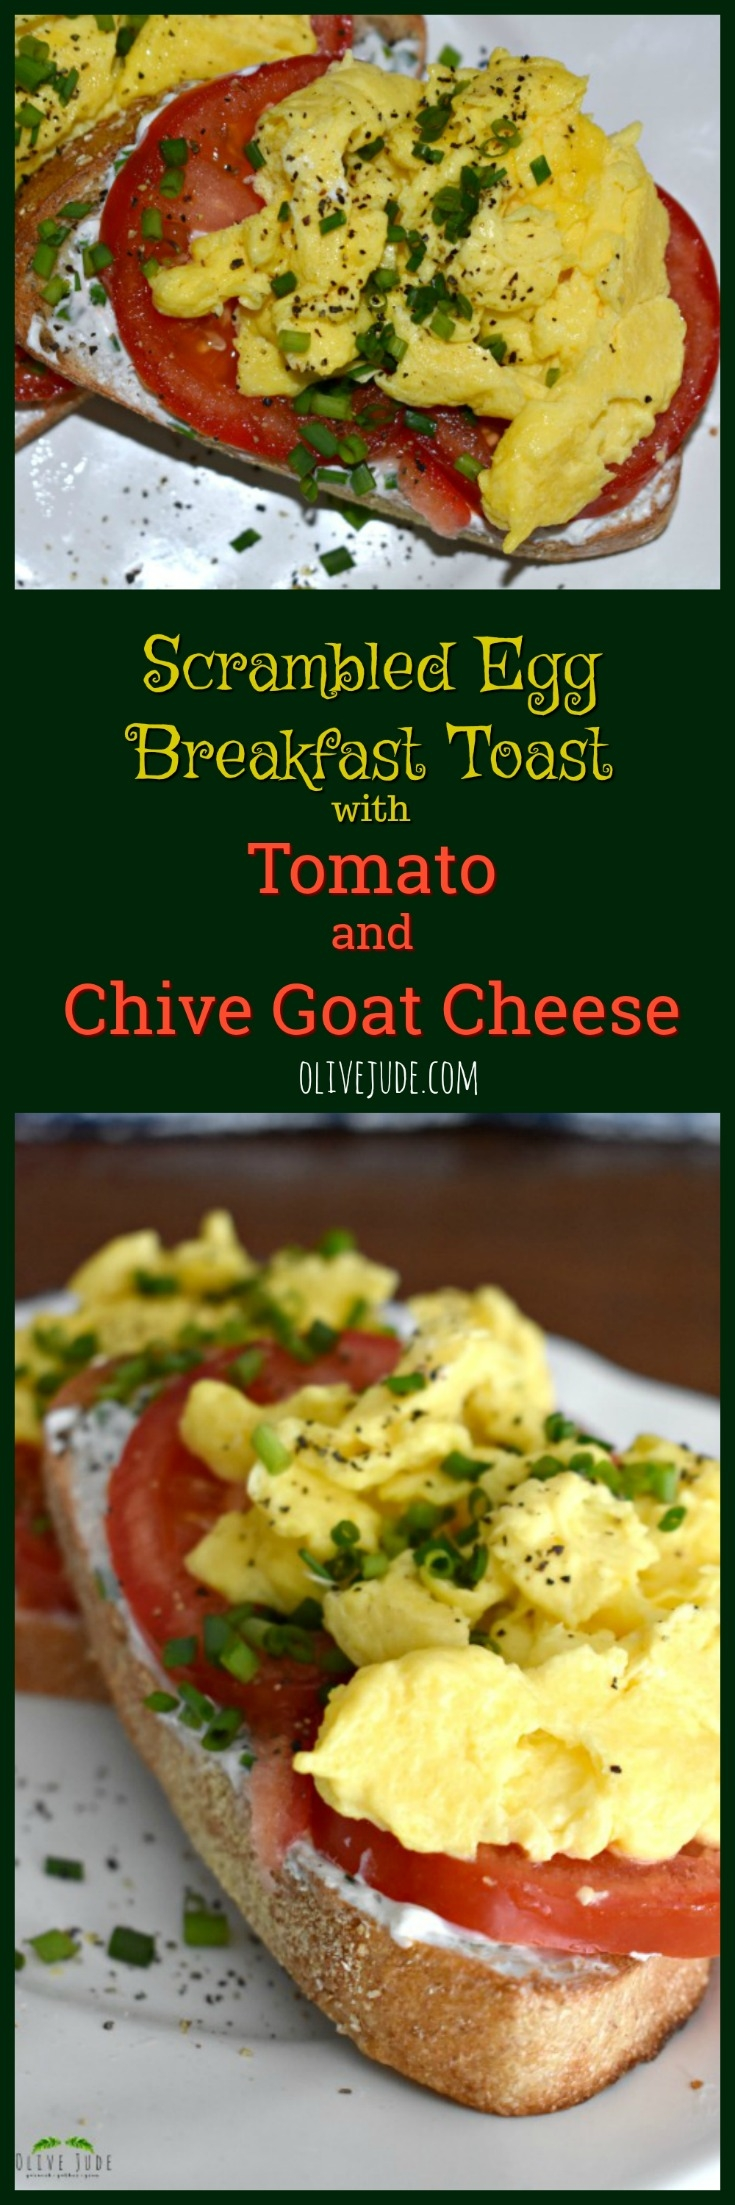 Scrambled Egg Breakfast Toast with Tomato and Chive Goat Cheese #breakfasttoast #eggtoast #goatcheeseandegg #savorybreakfasttoast